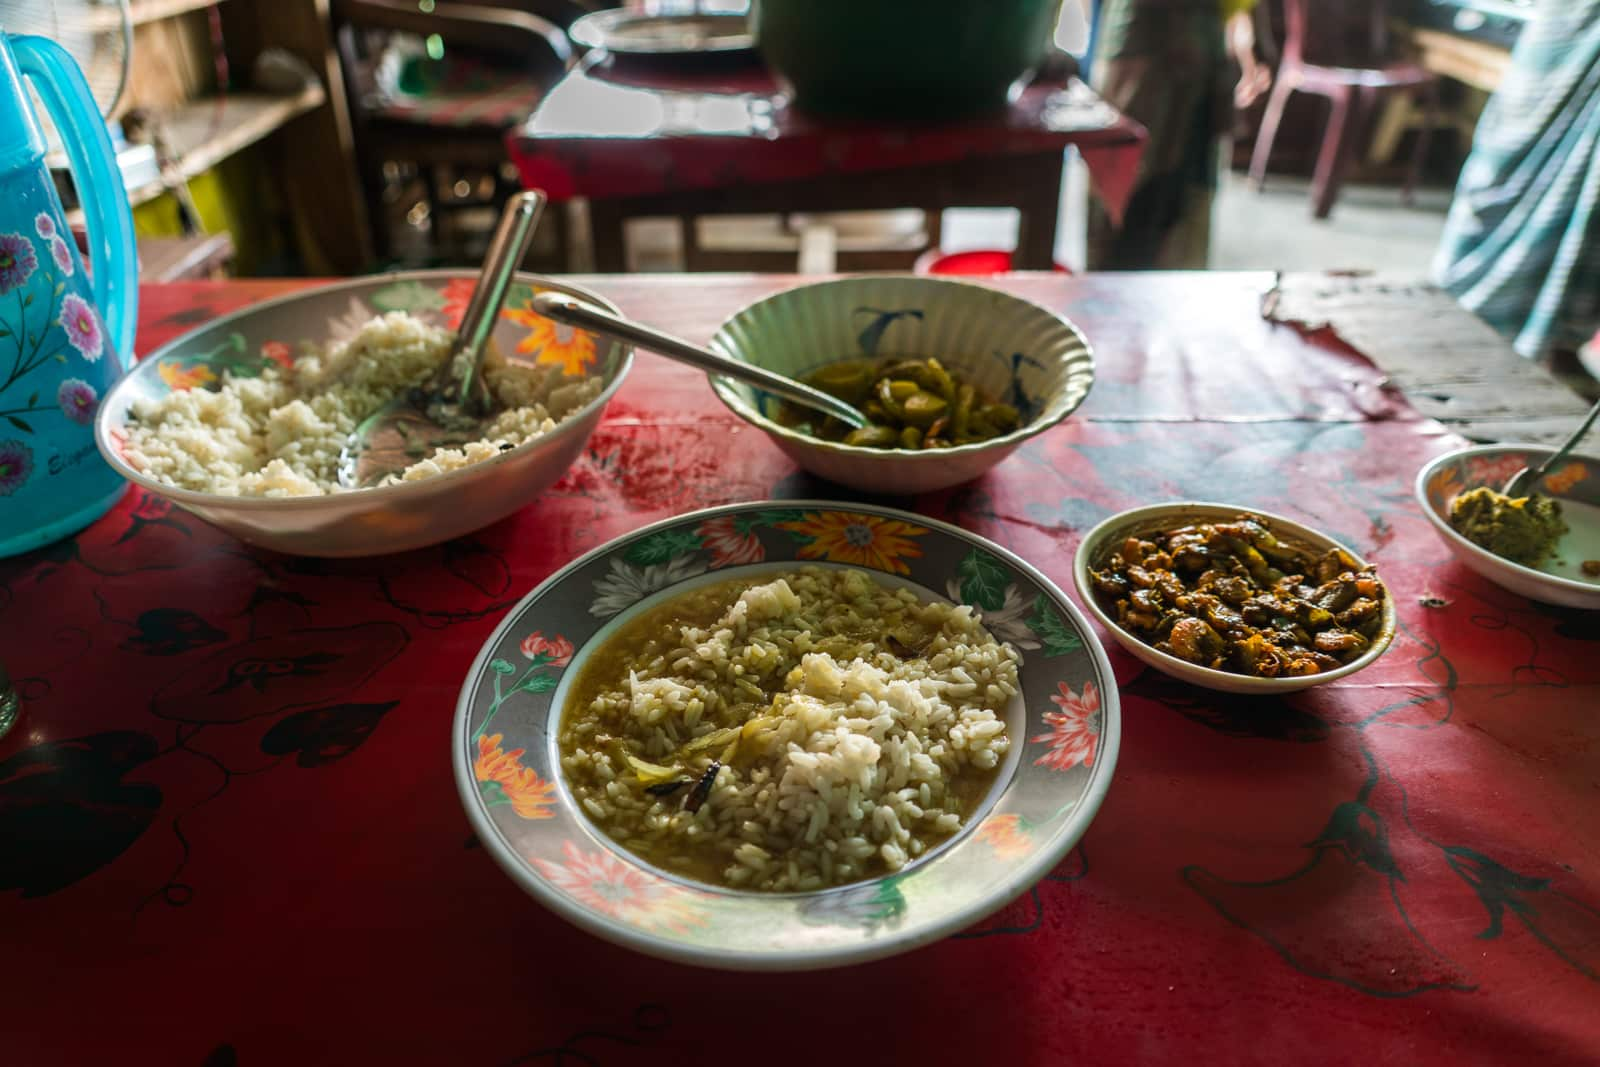 Travel guide to Nijhum Dwip, Bangladesh - Typical cheap lunch food on the island - Lost With Purpose travel blog